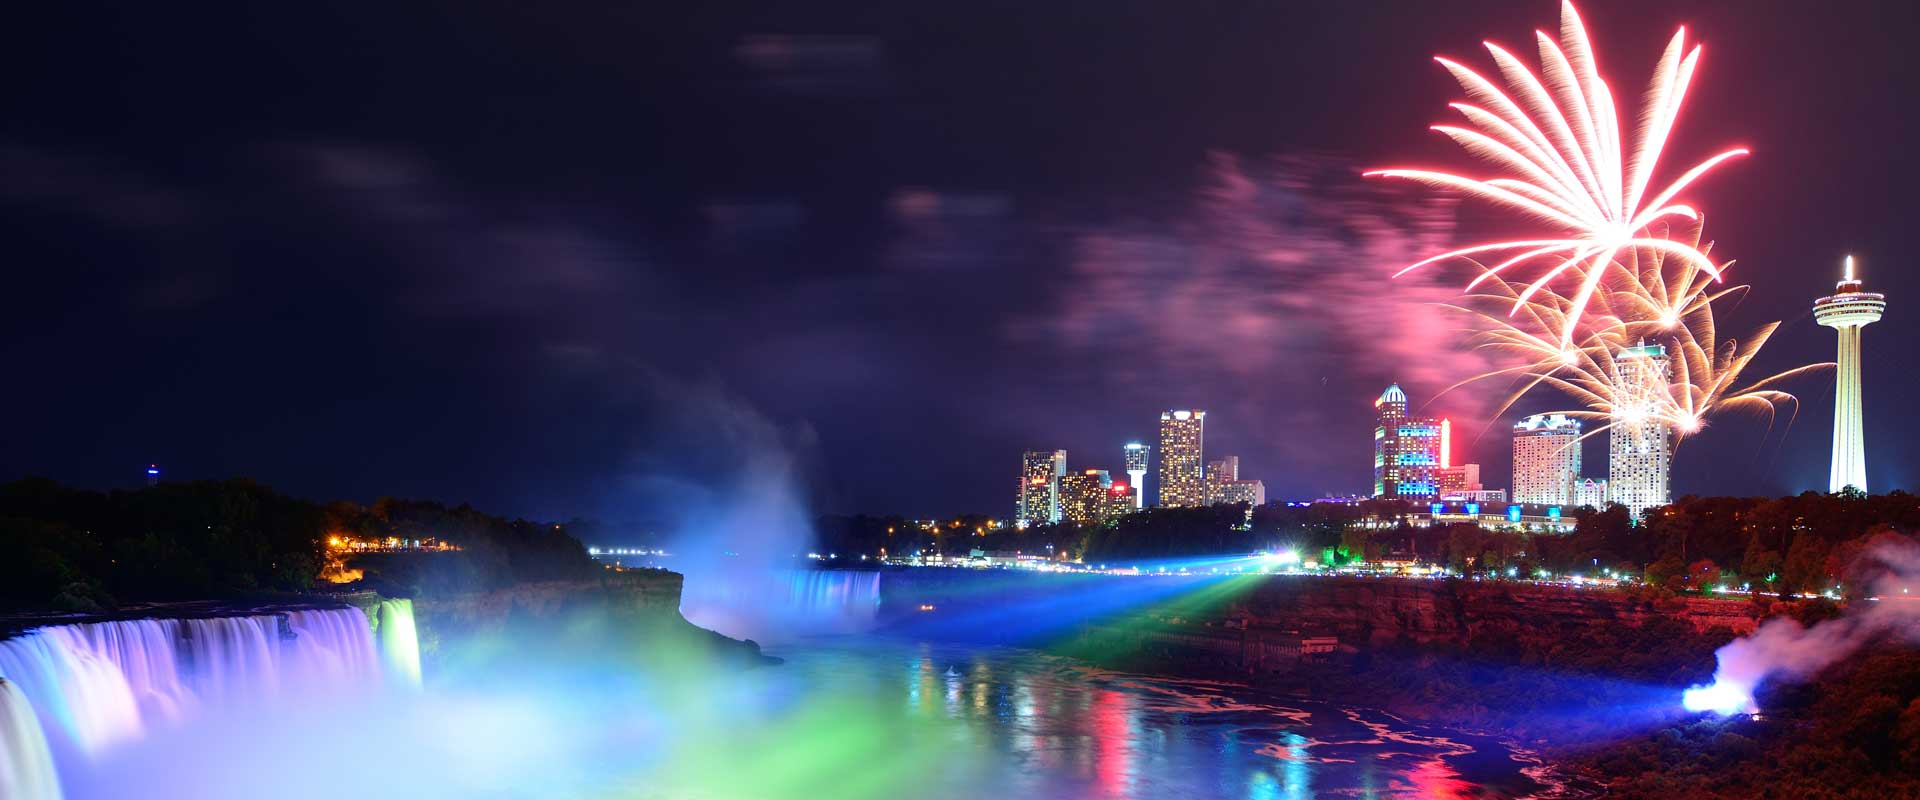 Niagara Falls Illumination and Fireworks